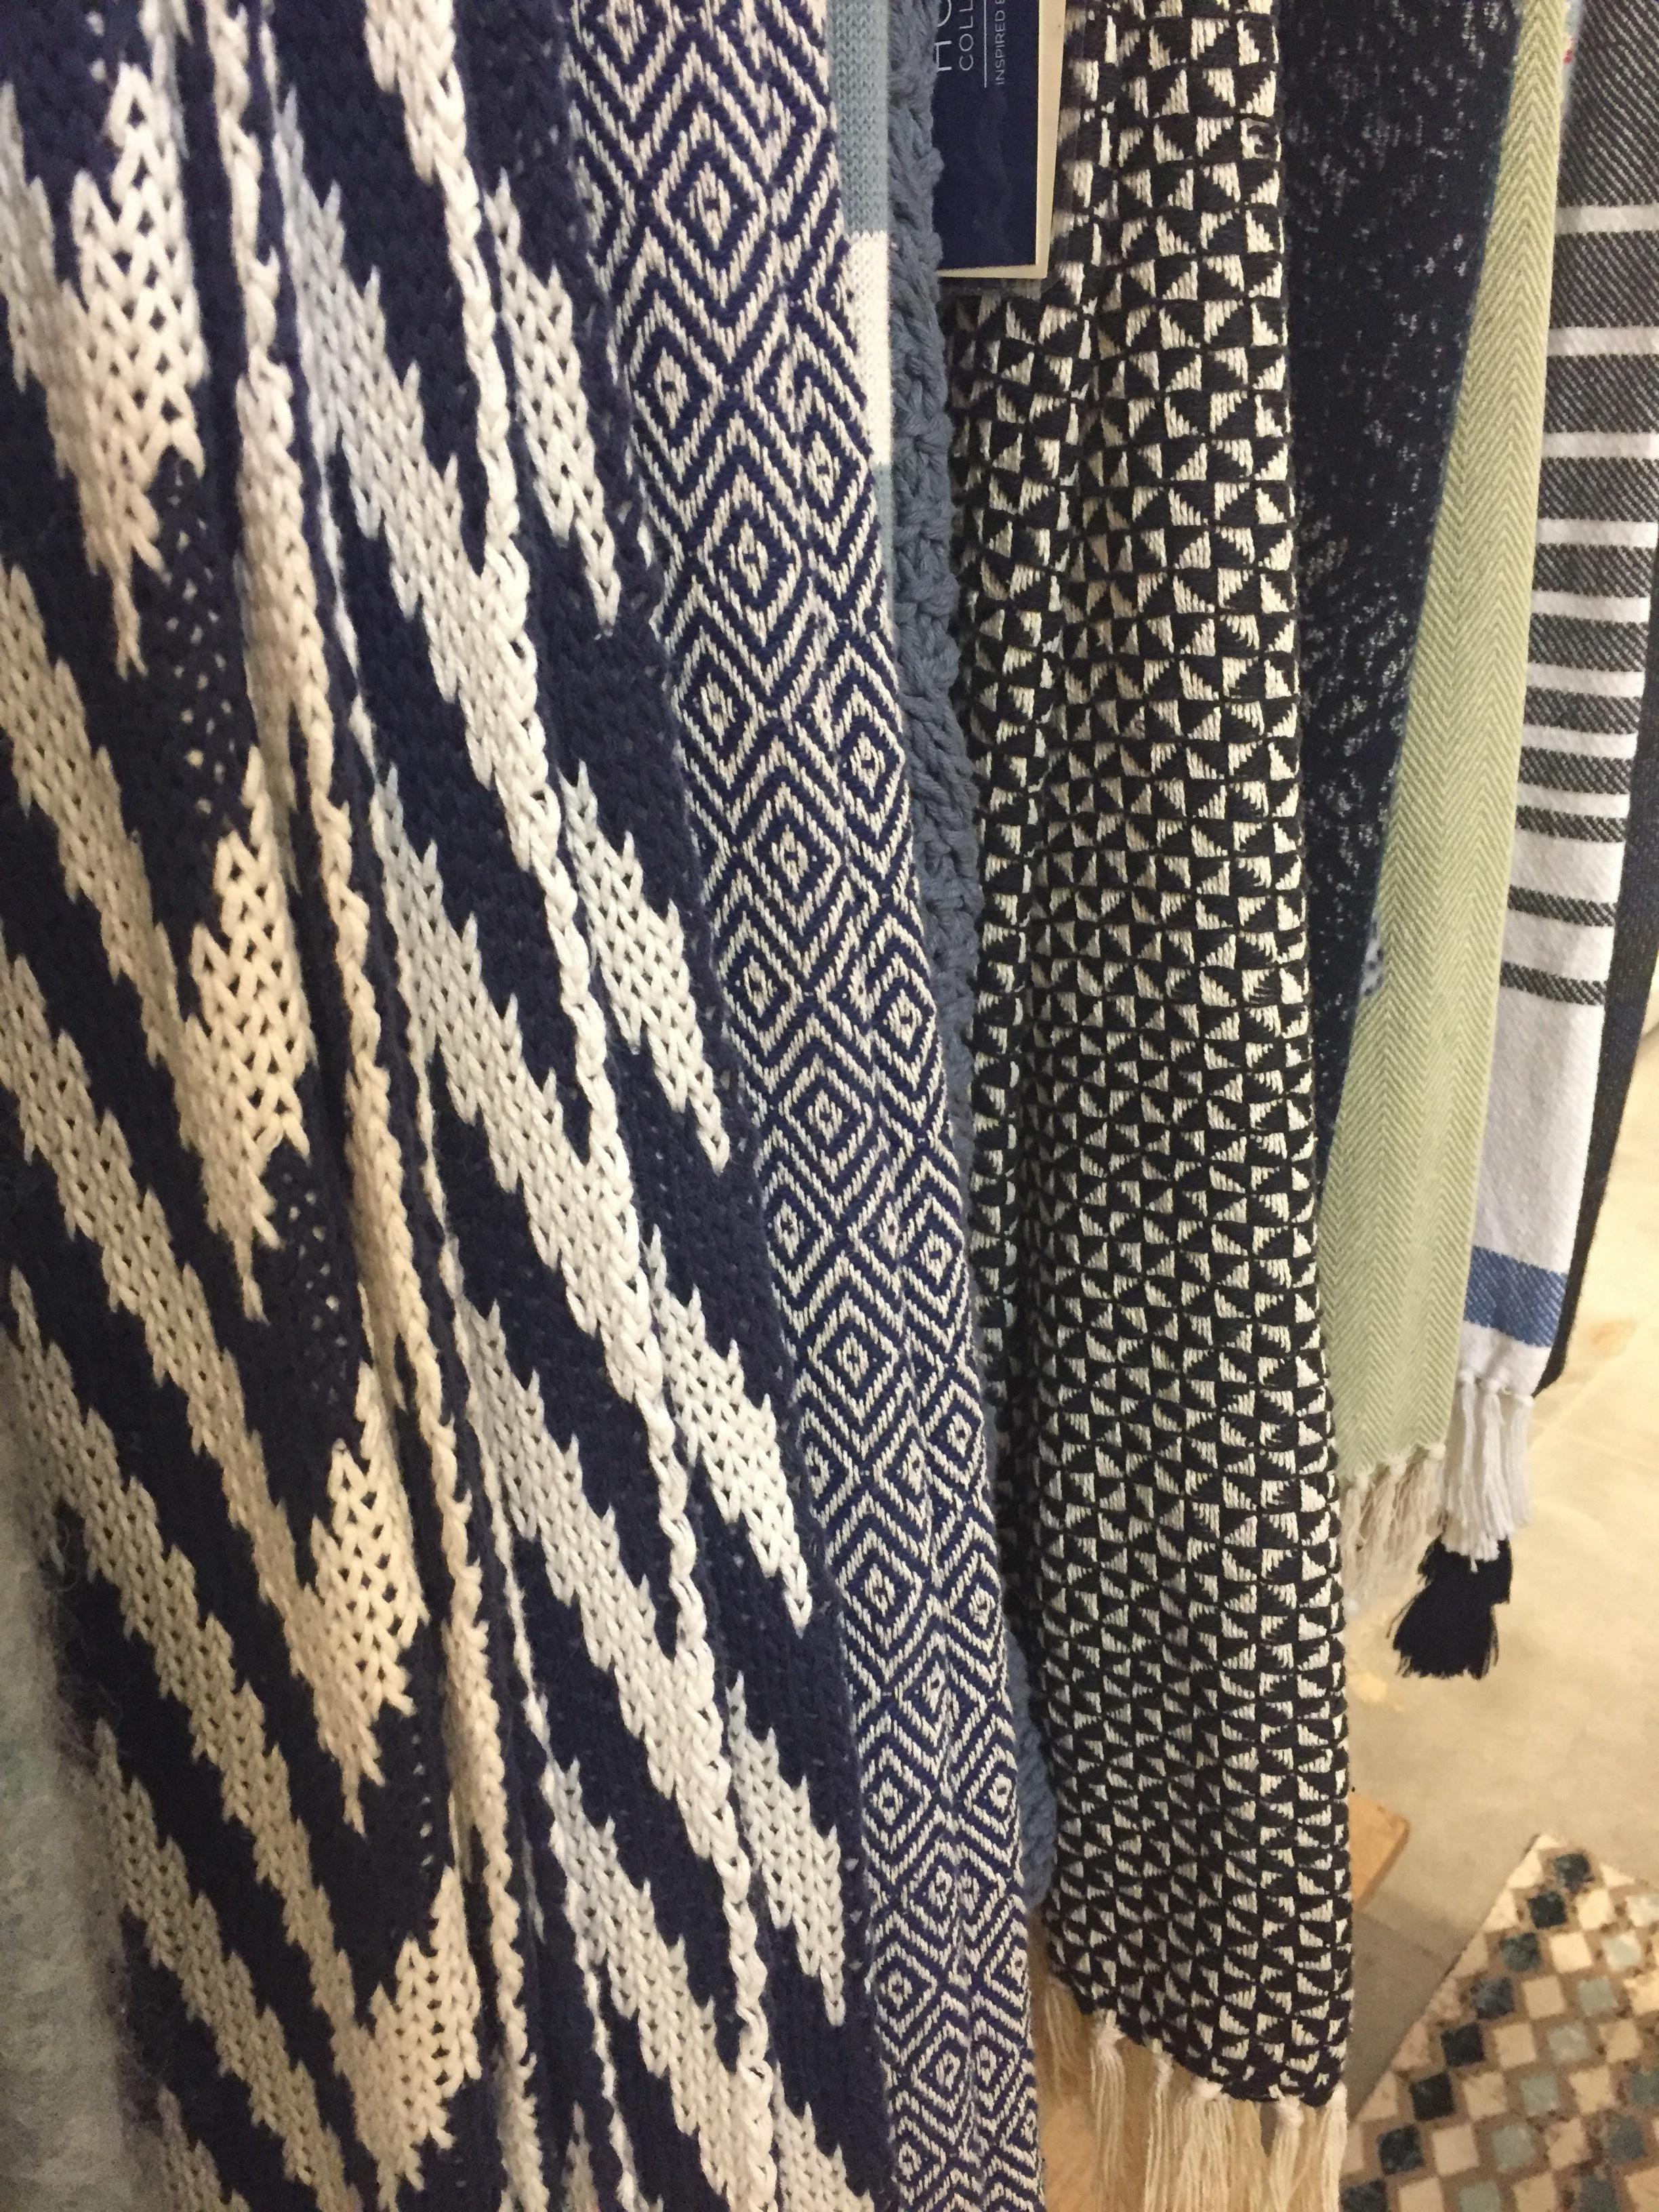 Texture and pattern are wonderful additions to these throws from Loloi Rugs.